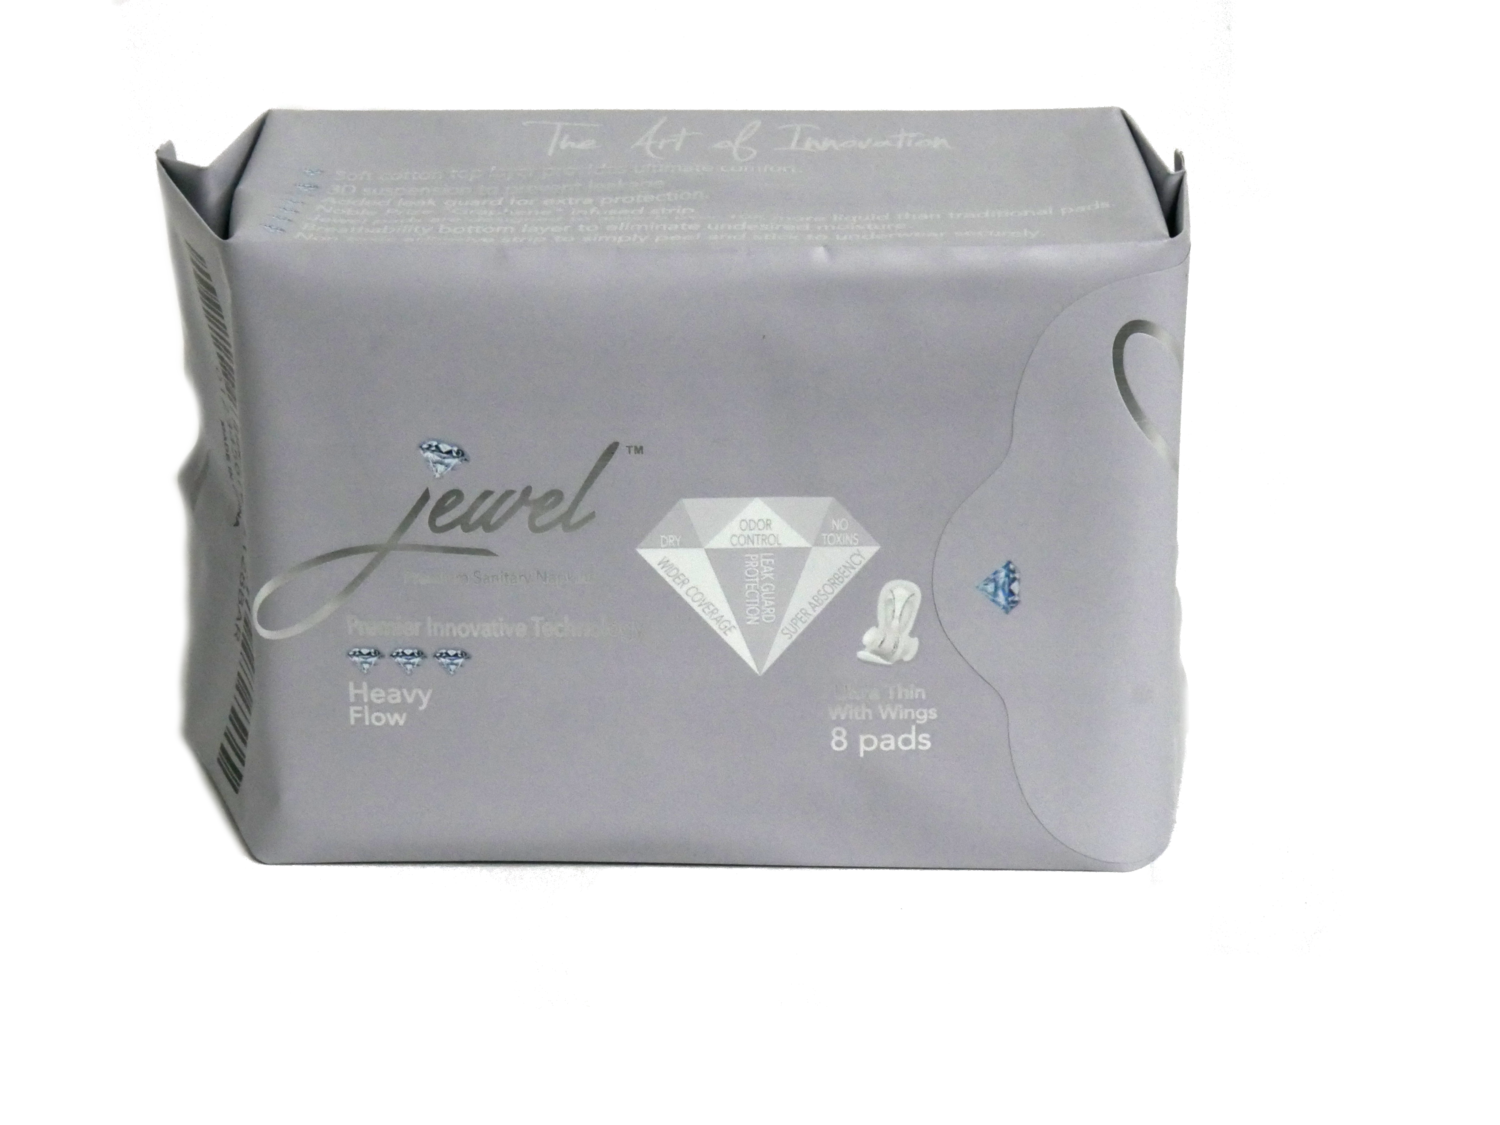 JEWEL PADS: NIGHT USE FOR HEAVY FLOW